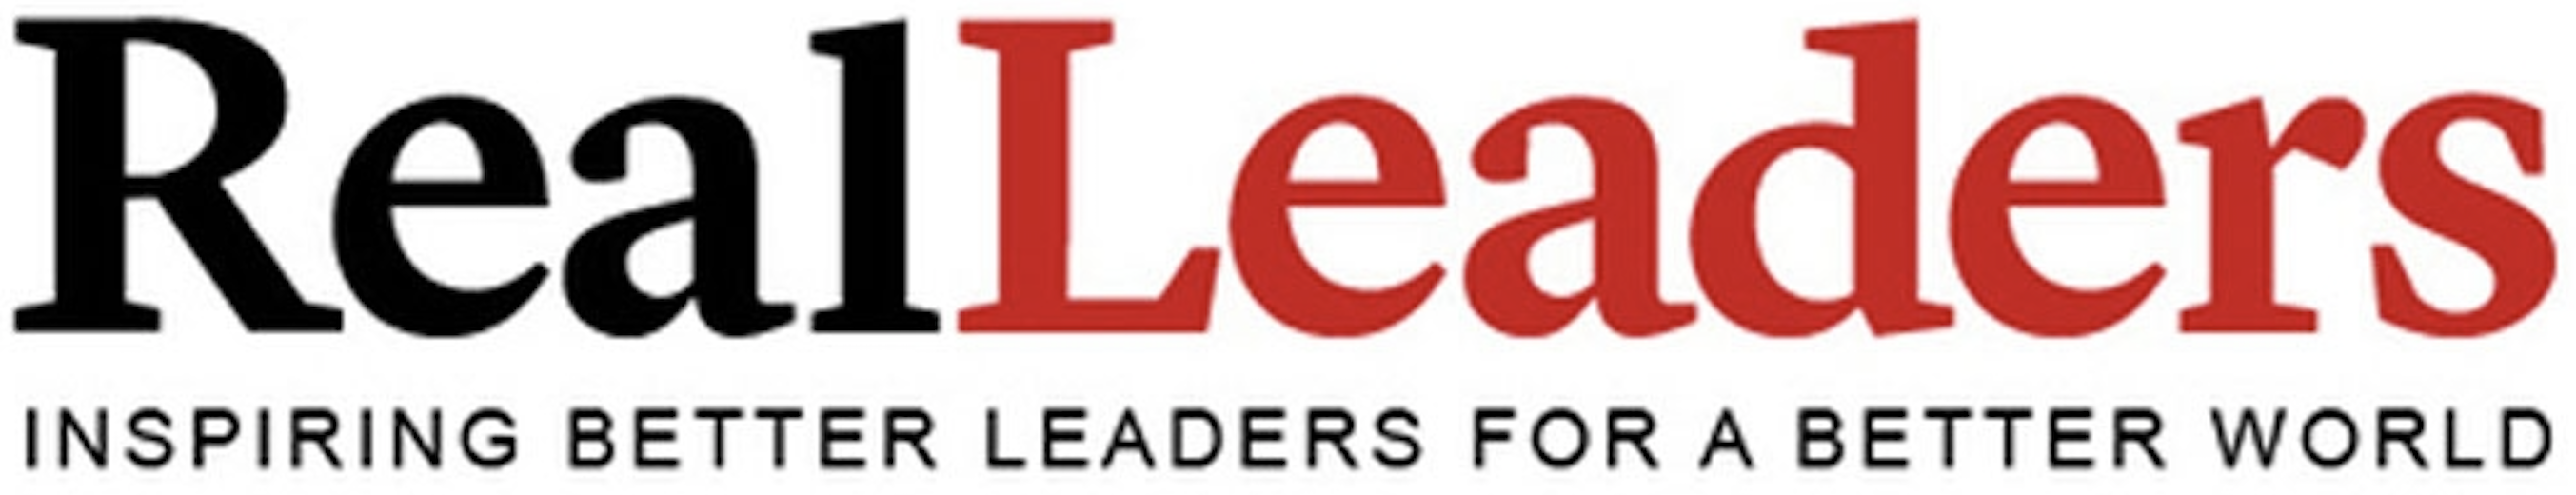 Read Leaders